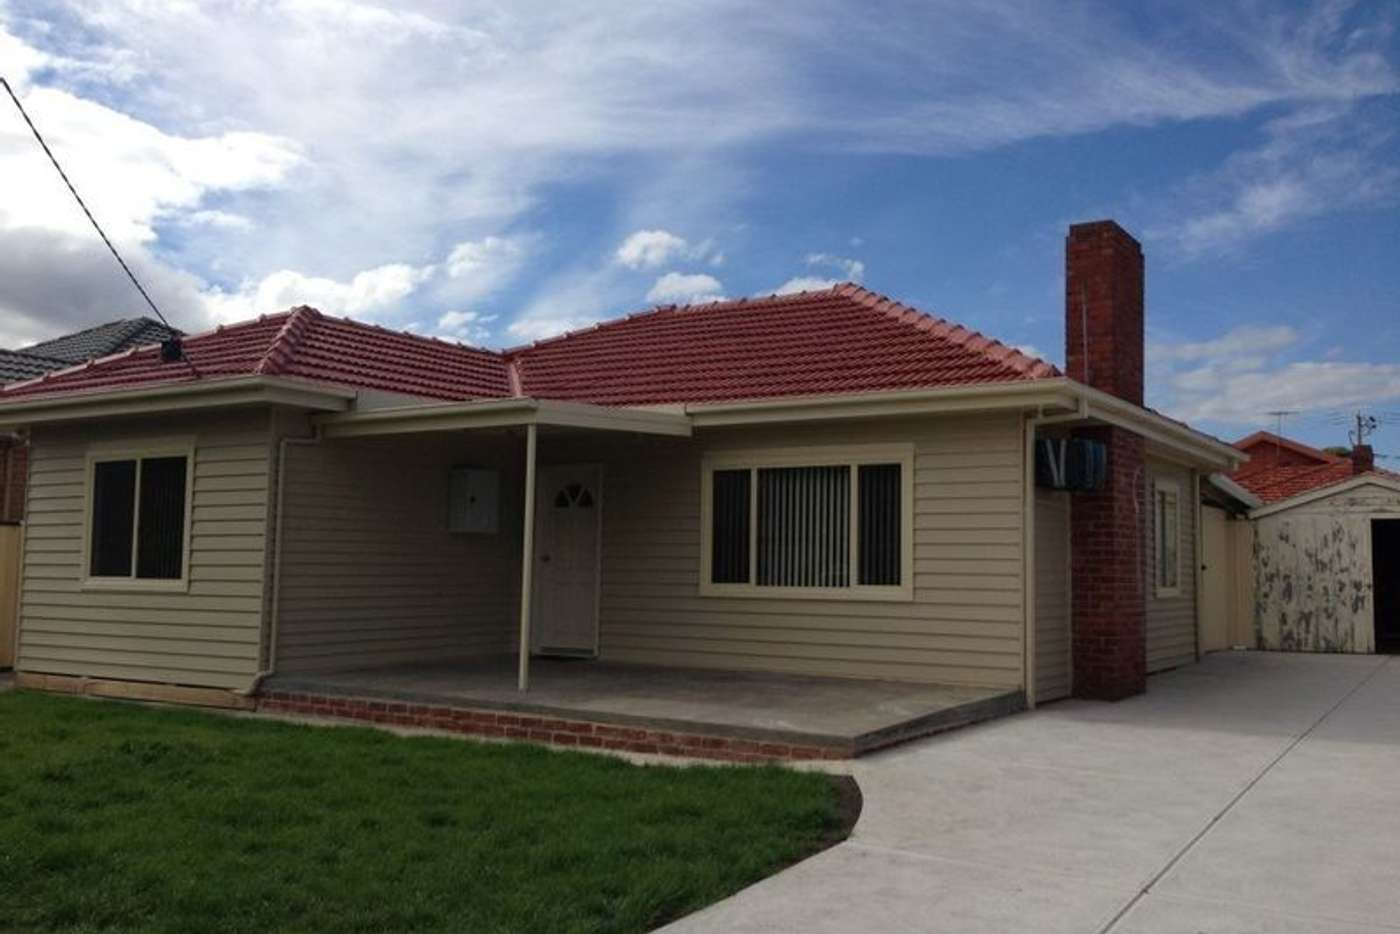 Main view of Homely house listing, 28 Arndell Street, Thomastown VIC 3074